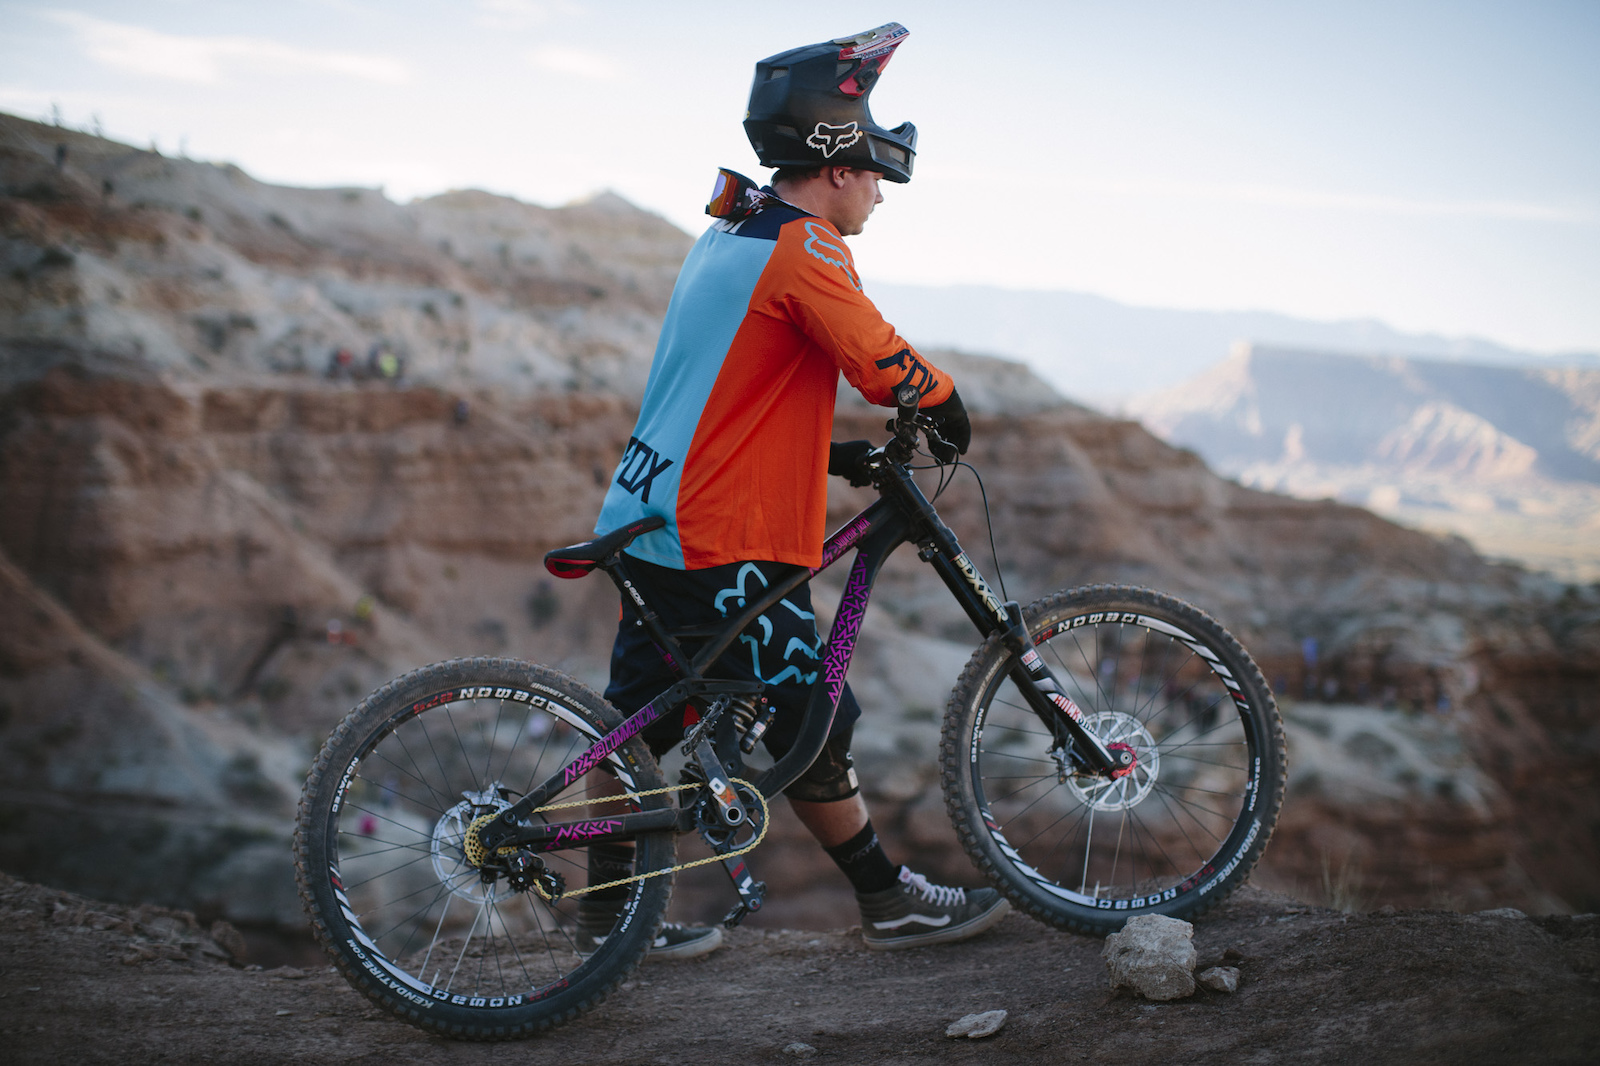 Kyle Strait at RedBull Rampage 2015 Virgin Utah USA